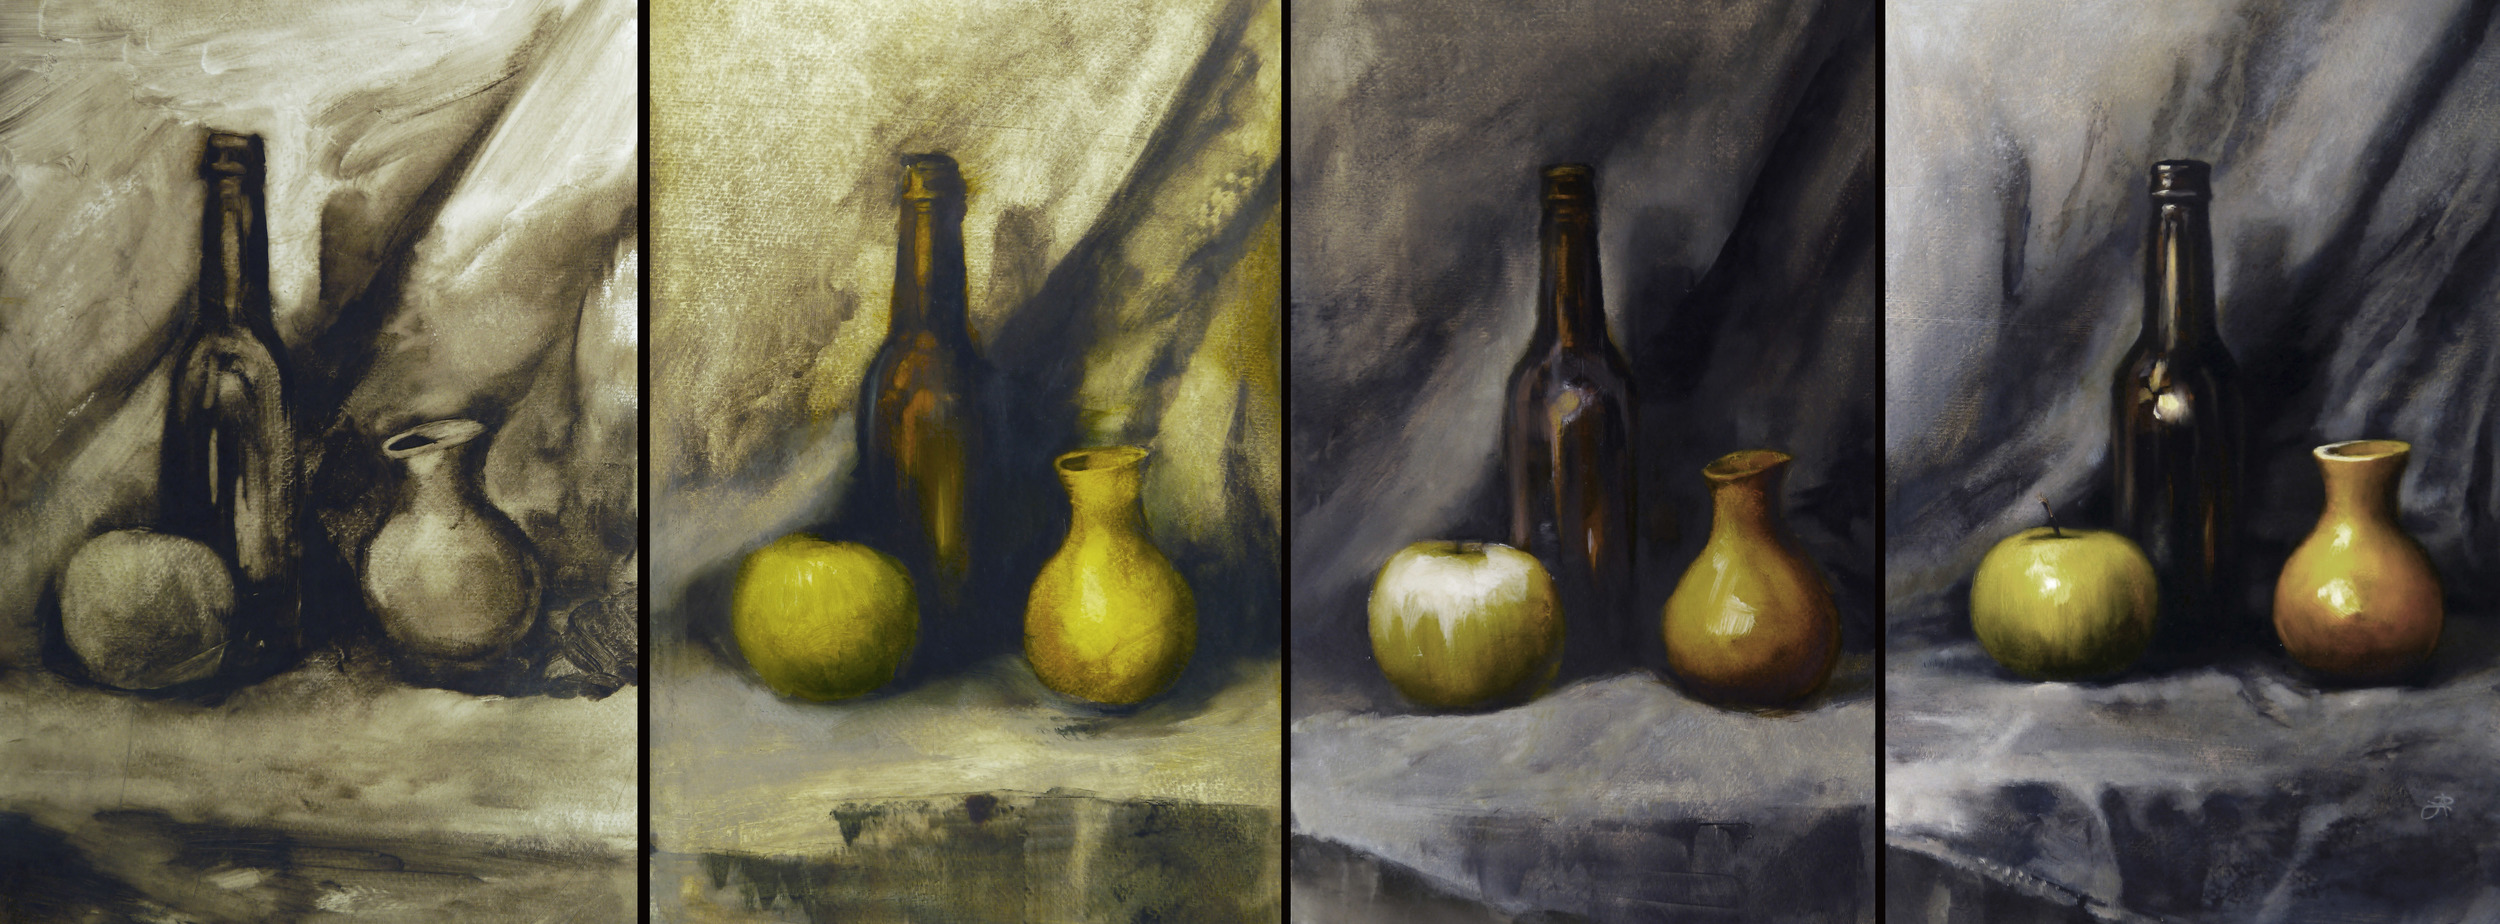 Indirect Traditional Oil Painting Process